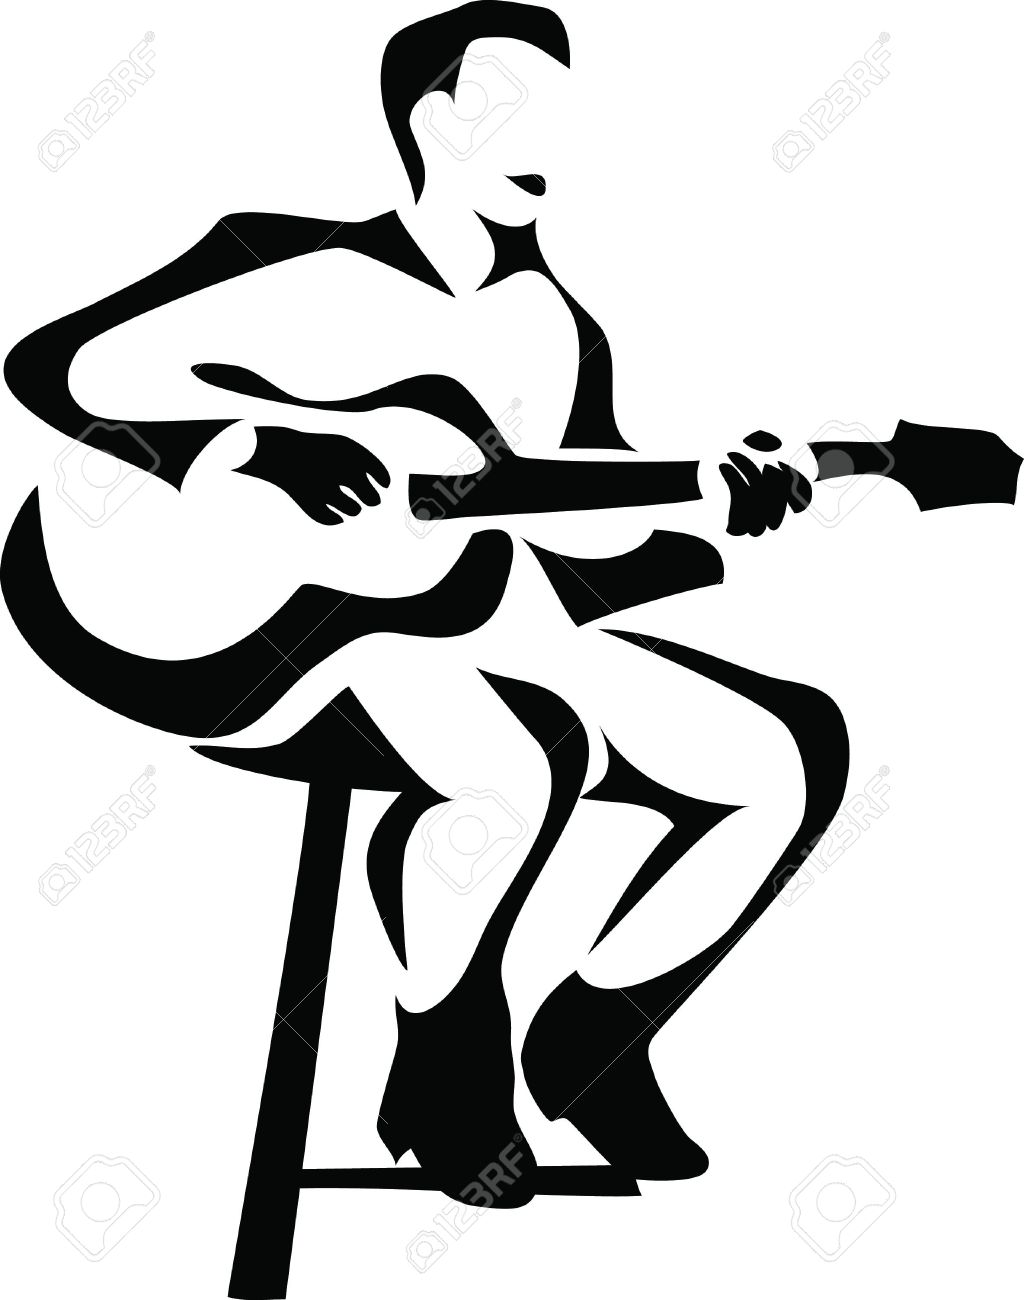 1024x1300 Guitar Player Royalty Free Cliparts, Vectors, And Stock